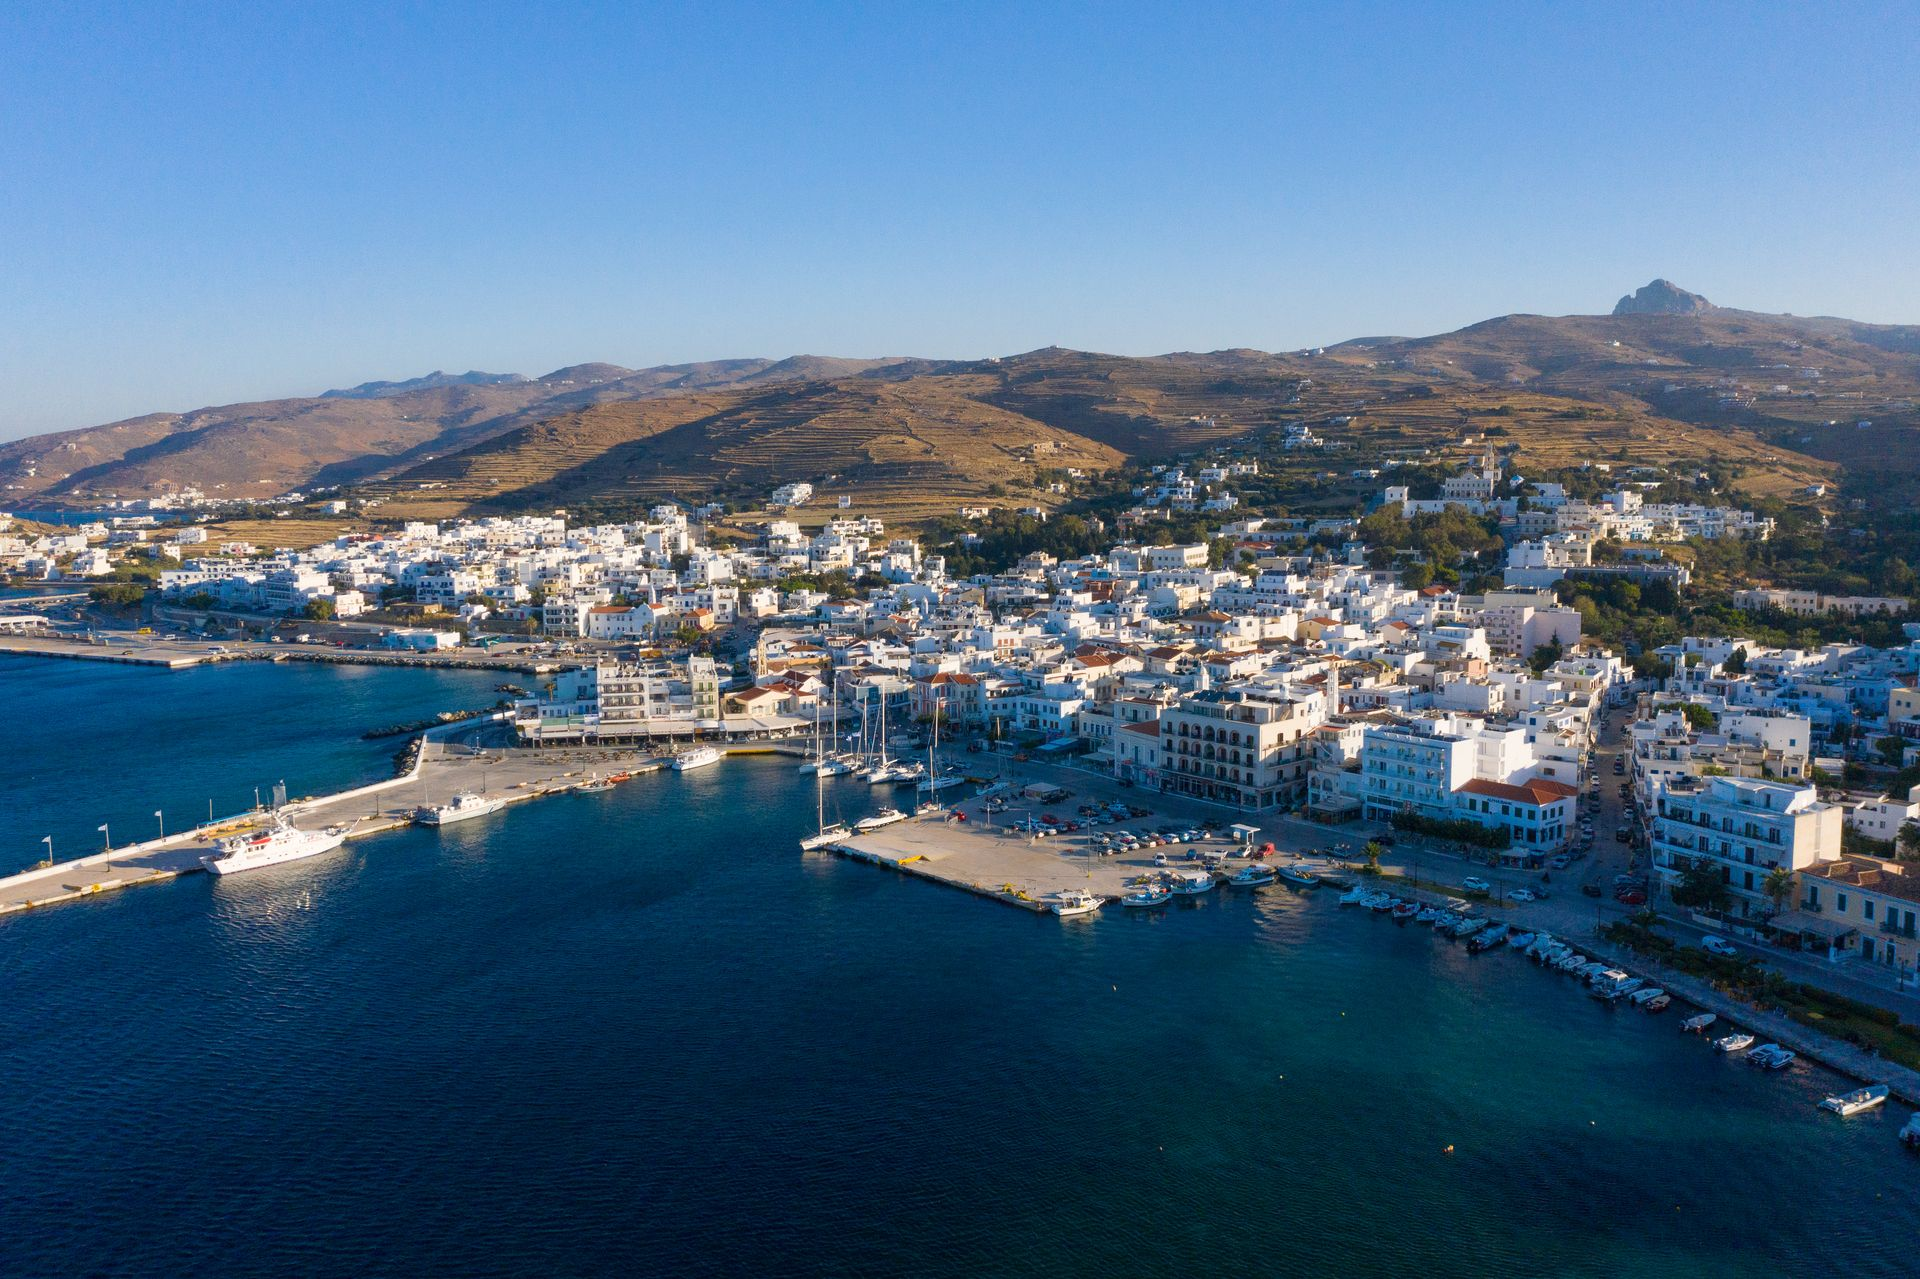 Panagia Evangelistria is your first taste of Hora (main town & port)